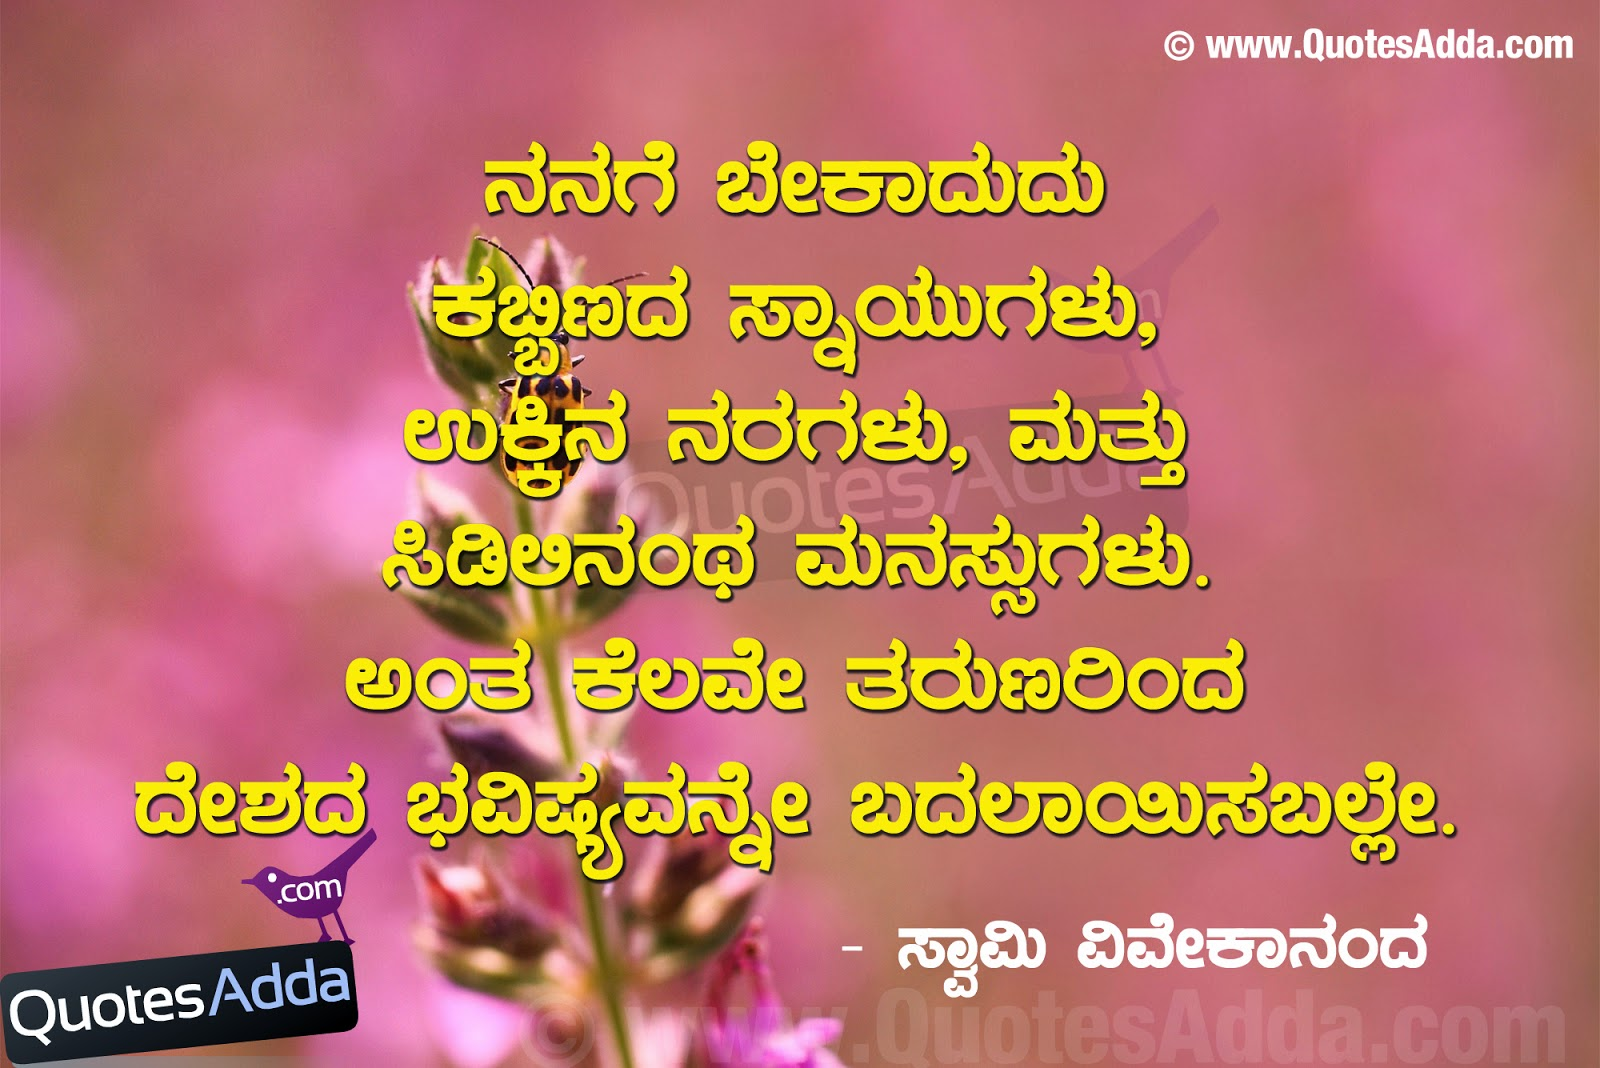 Sad Quotes About Love In Kannada : Swami+Vivekananda+Quotes+in+Kannada+-+JUN18+-+QuotesAdda.com.jpg